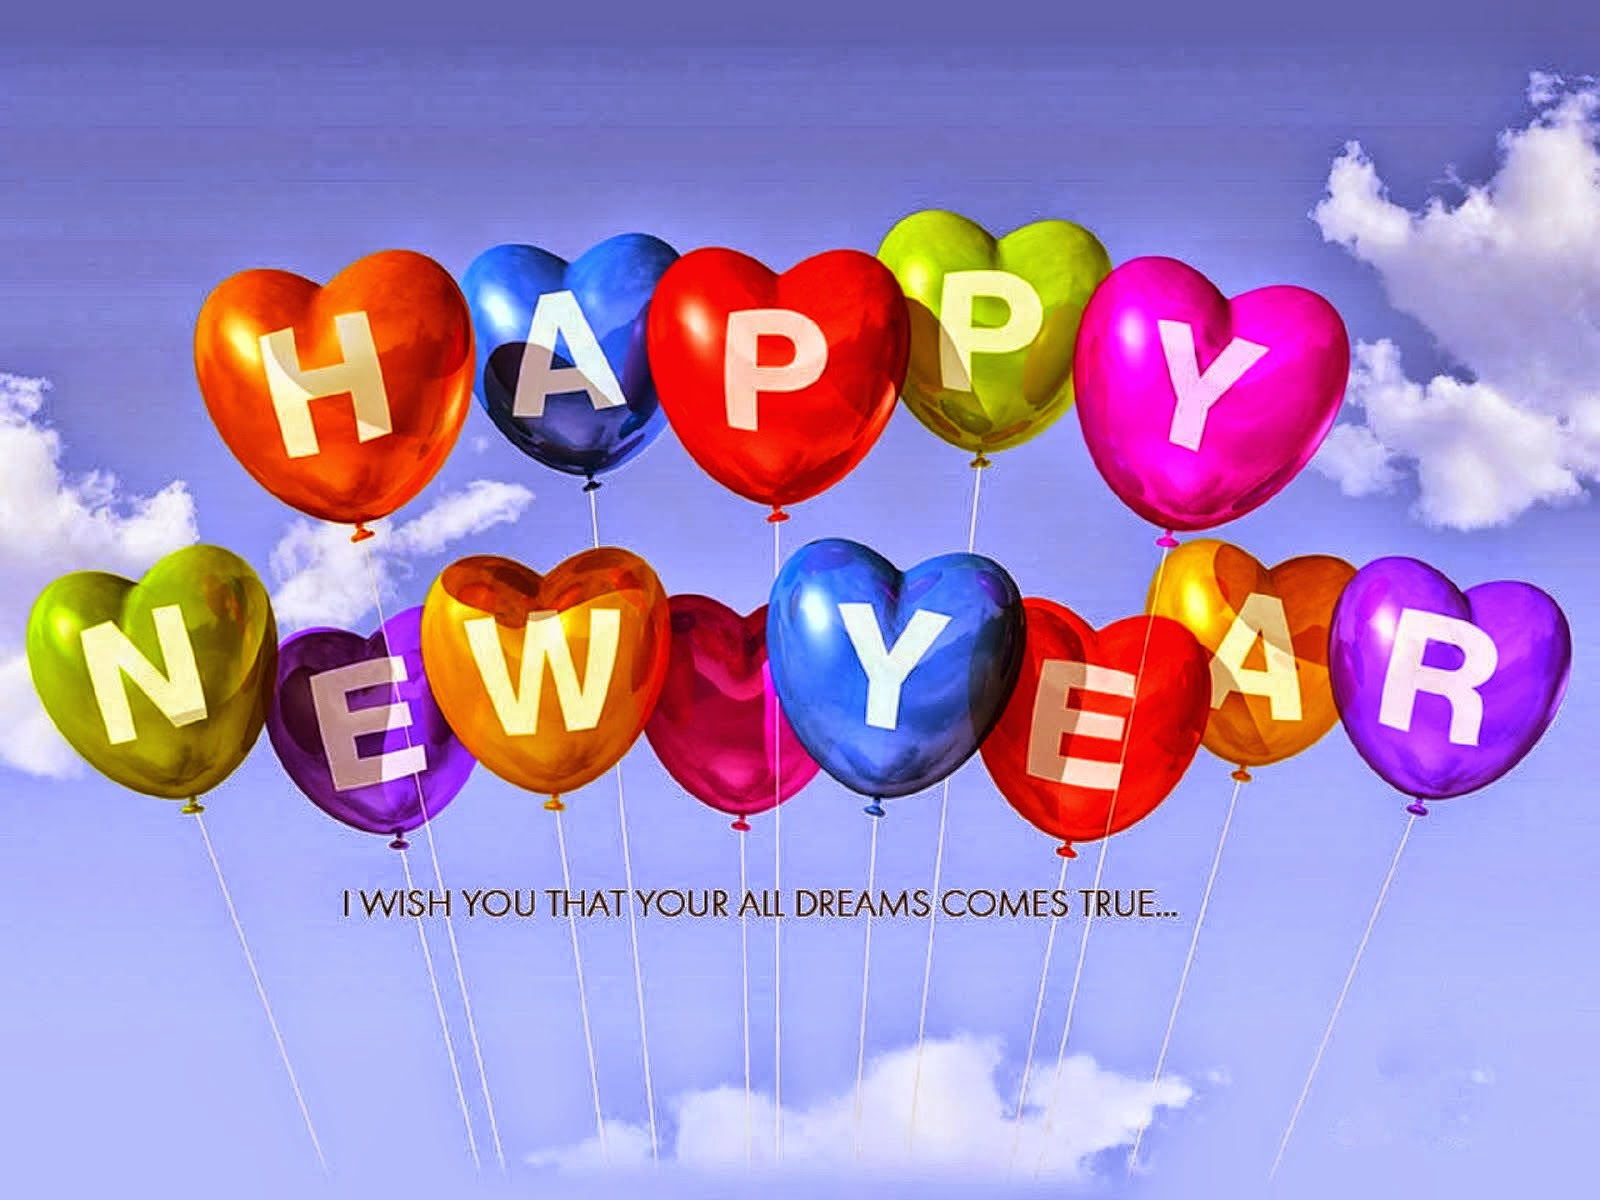 wishes quotes cards messages are getting trending balloon love special wallpaper hd 2016 beautiful images are much attractive happy new year 2016